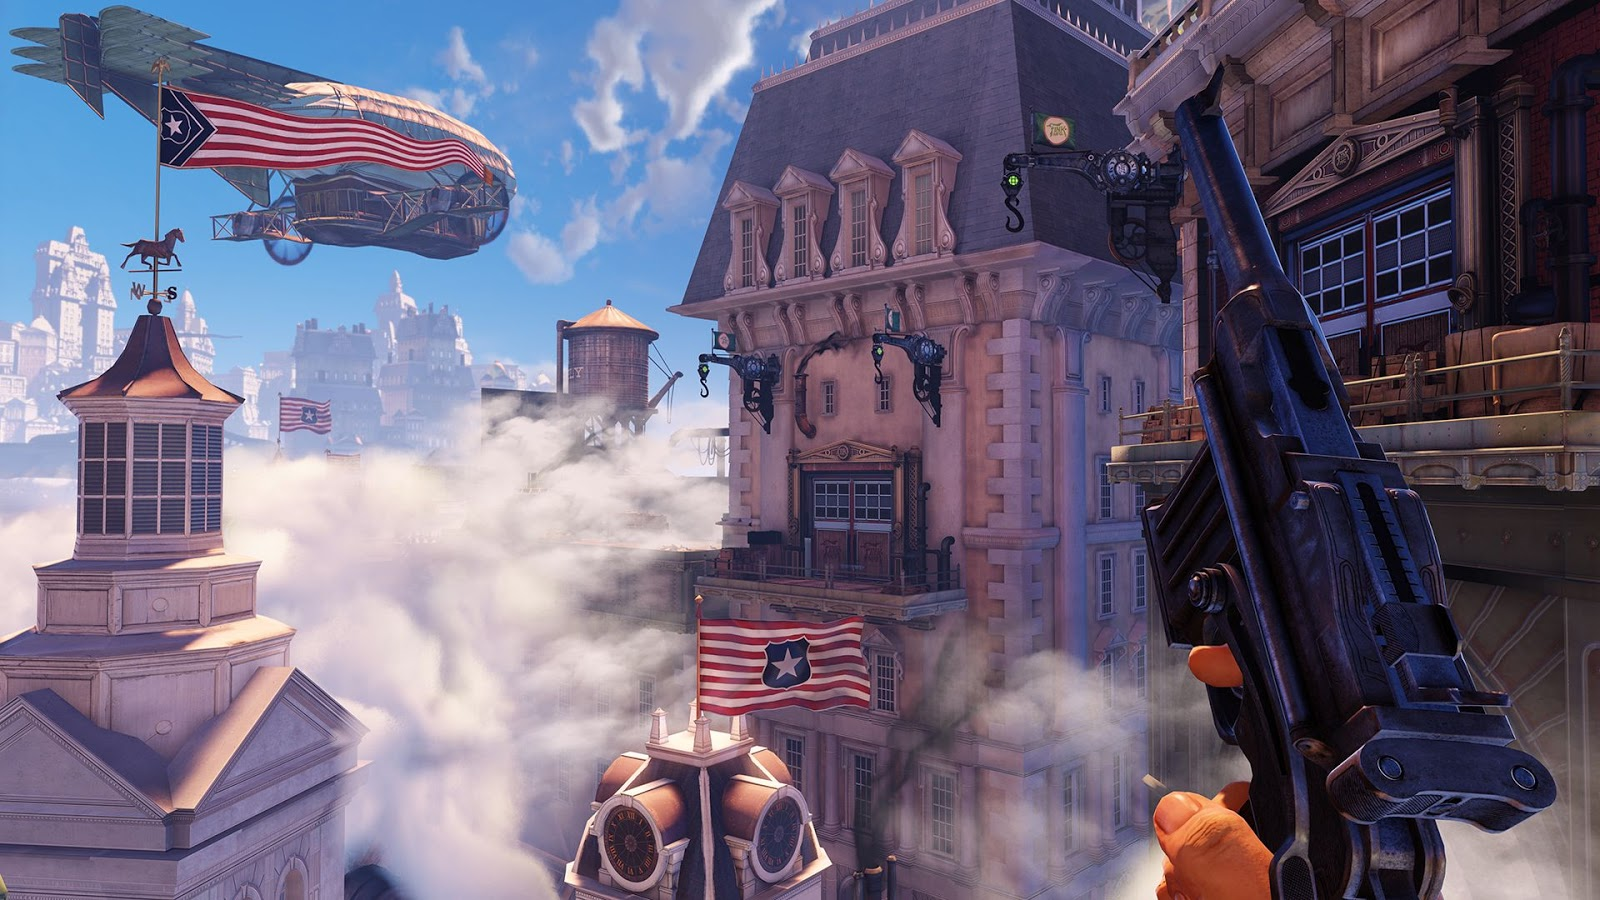 Bioshock Infinite HD & Widescreen Wallpaper 0.74463878576471